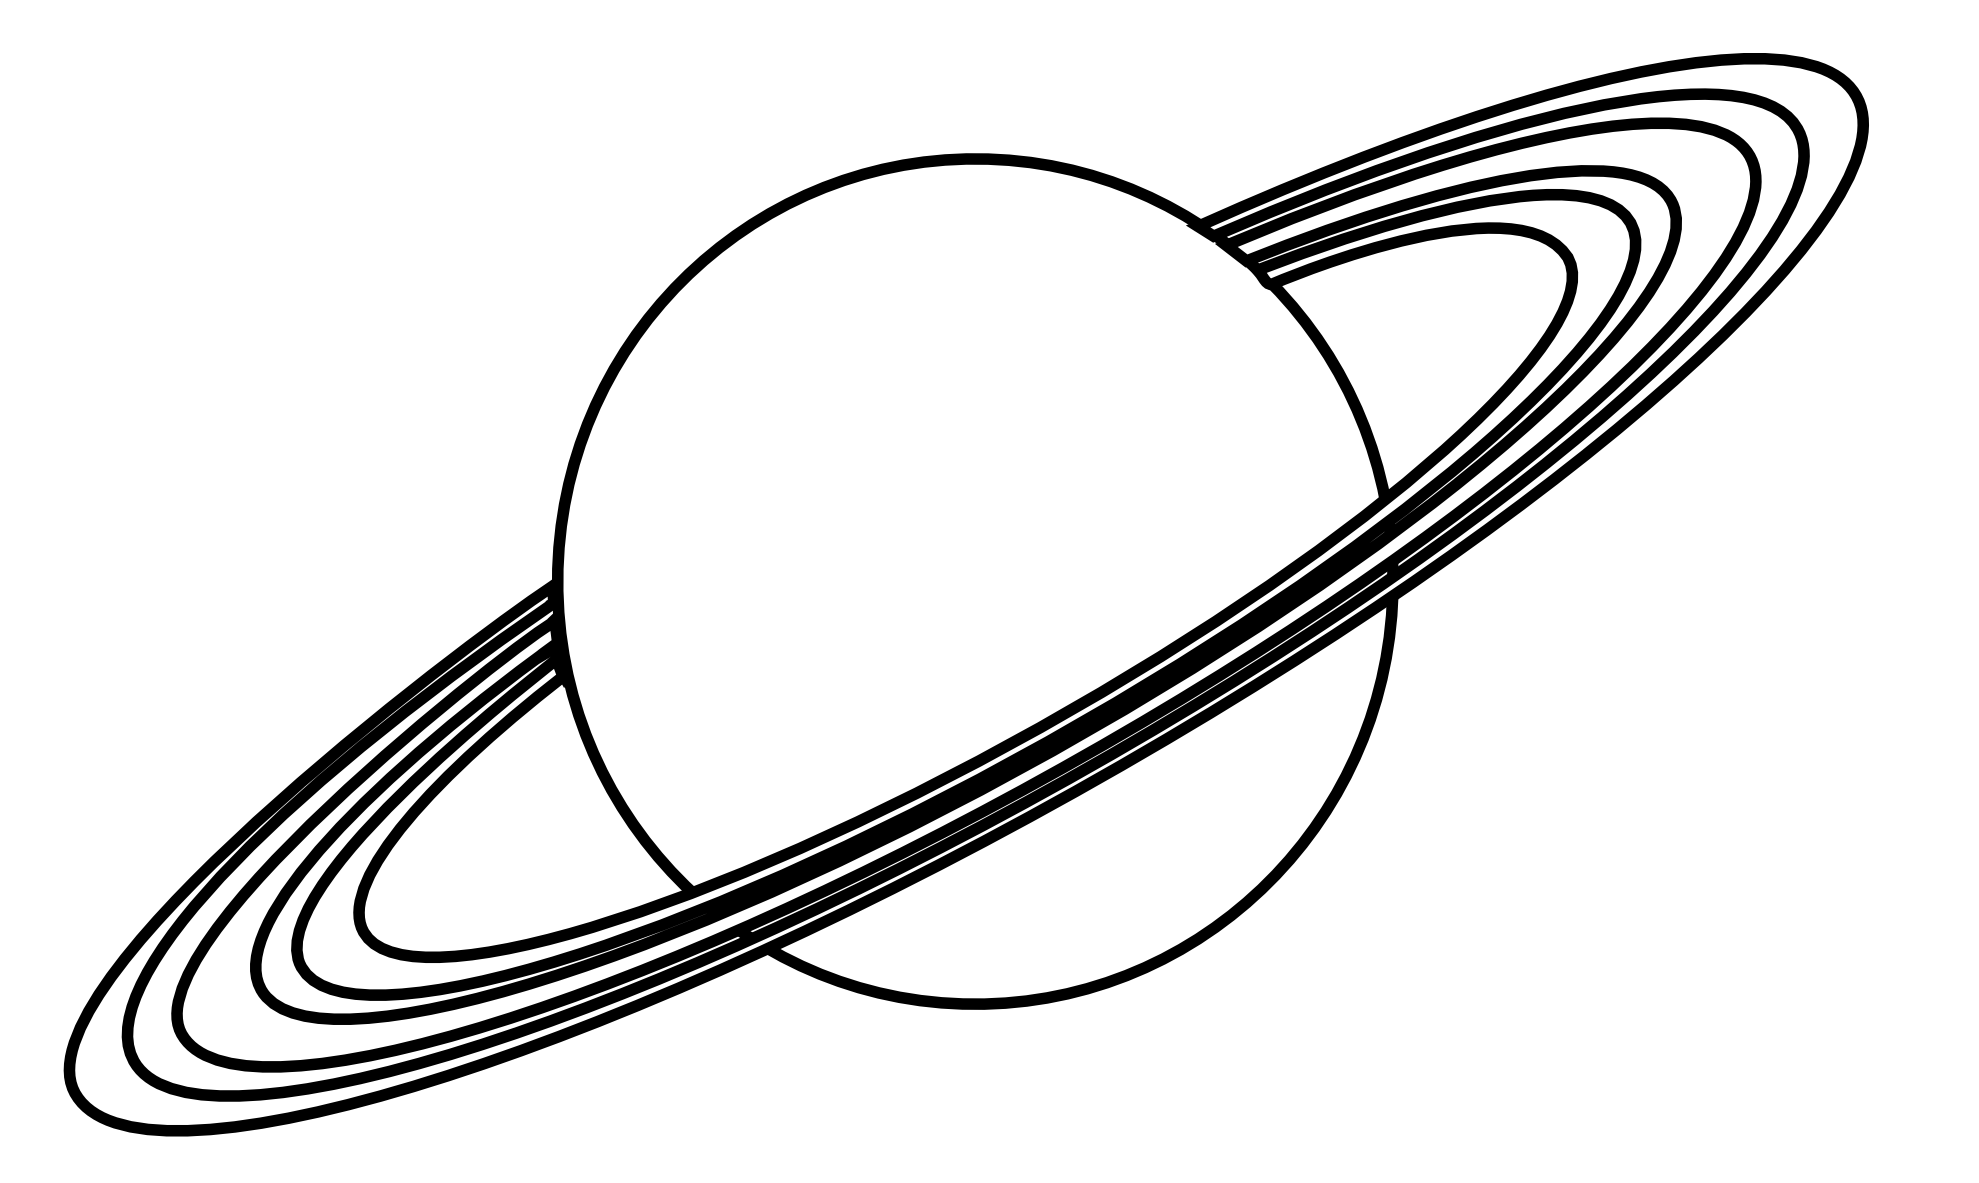 saturn colouring page free printable pictures of saturn download free clip art colouring saturn page